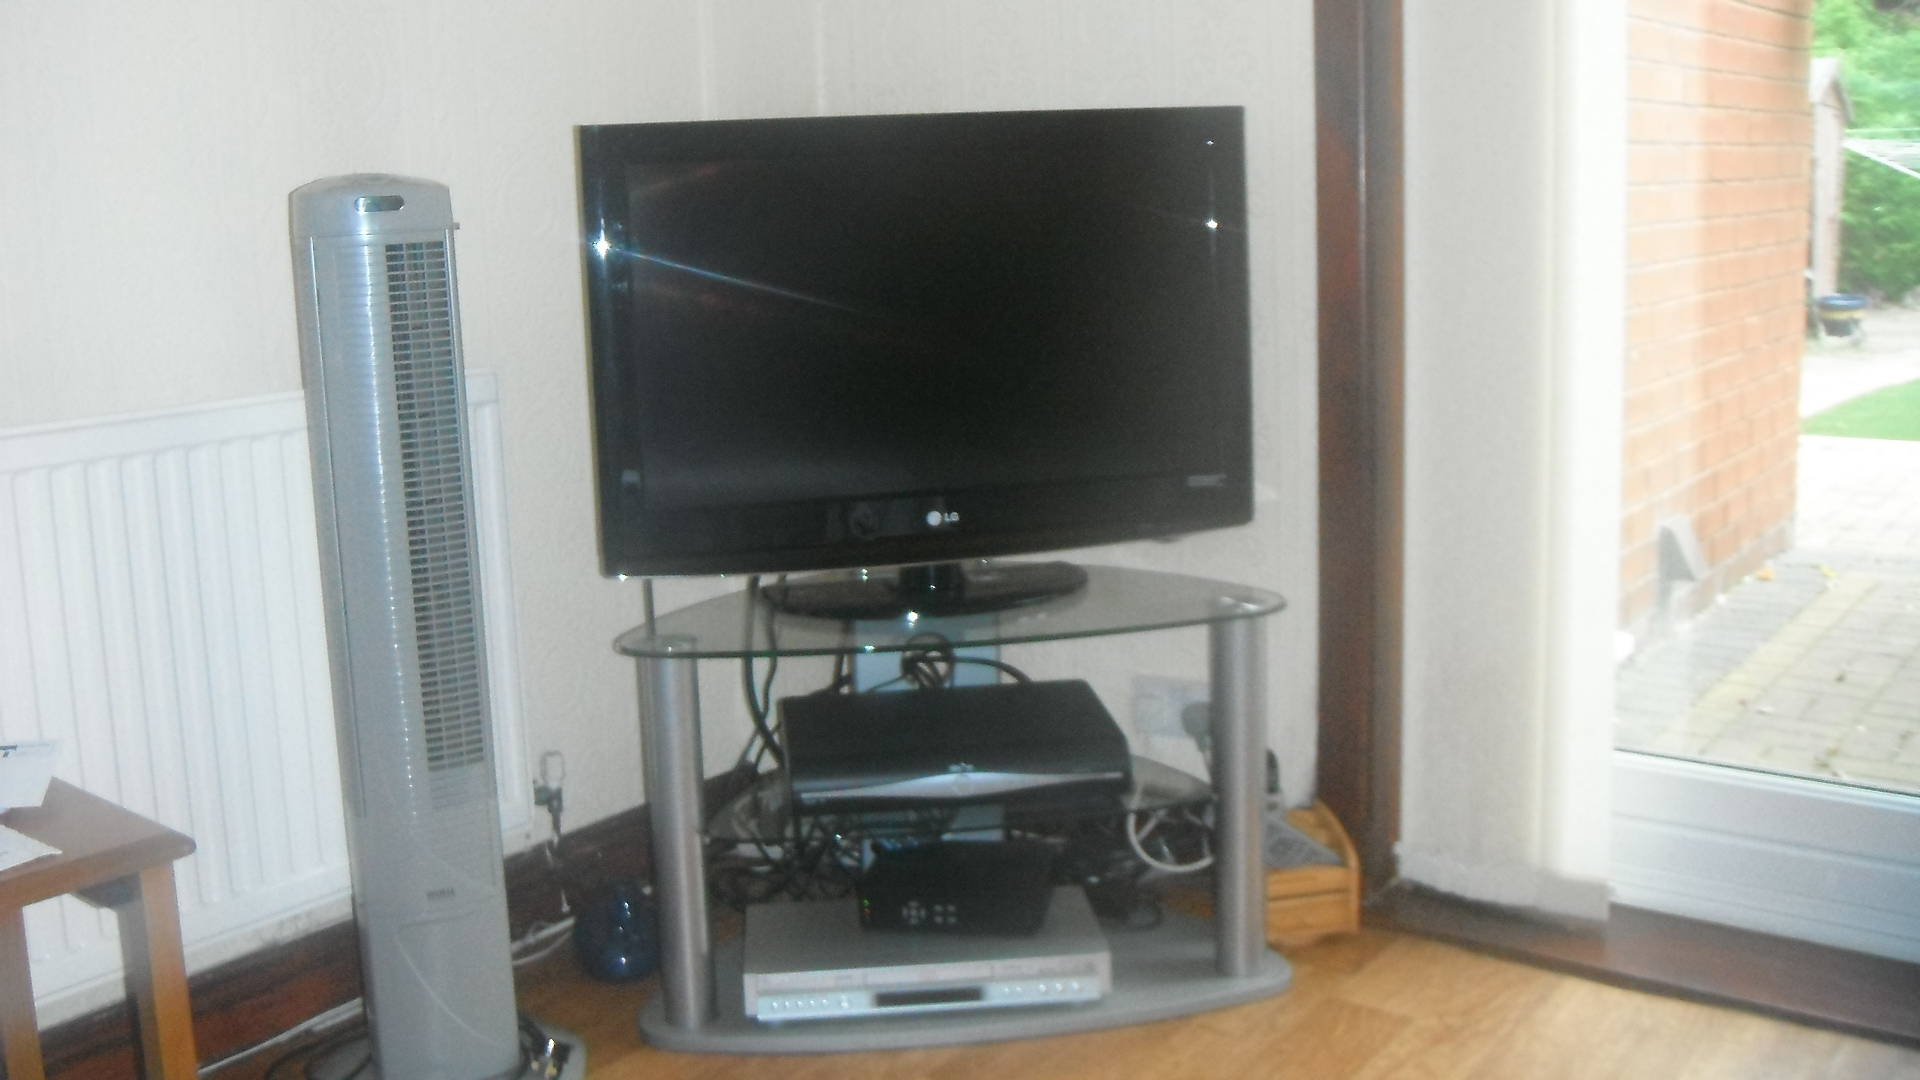 Photo taken by me – TV set